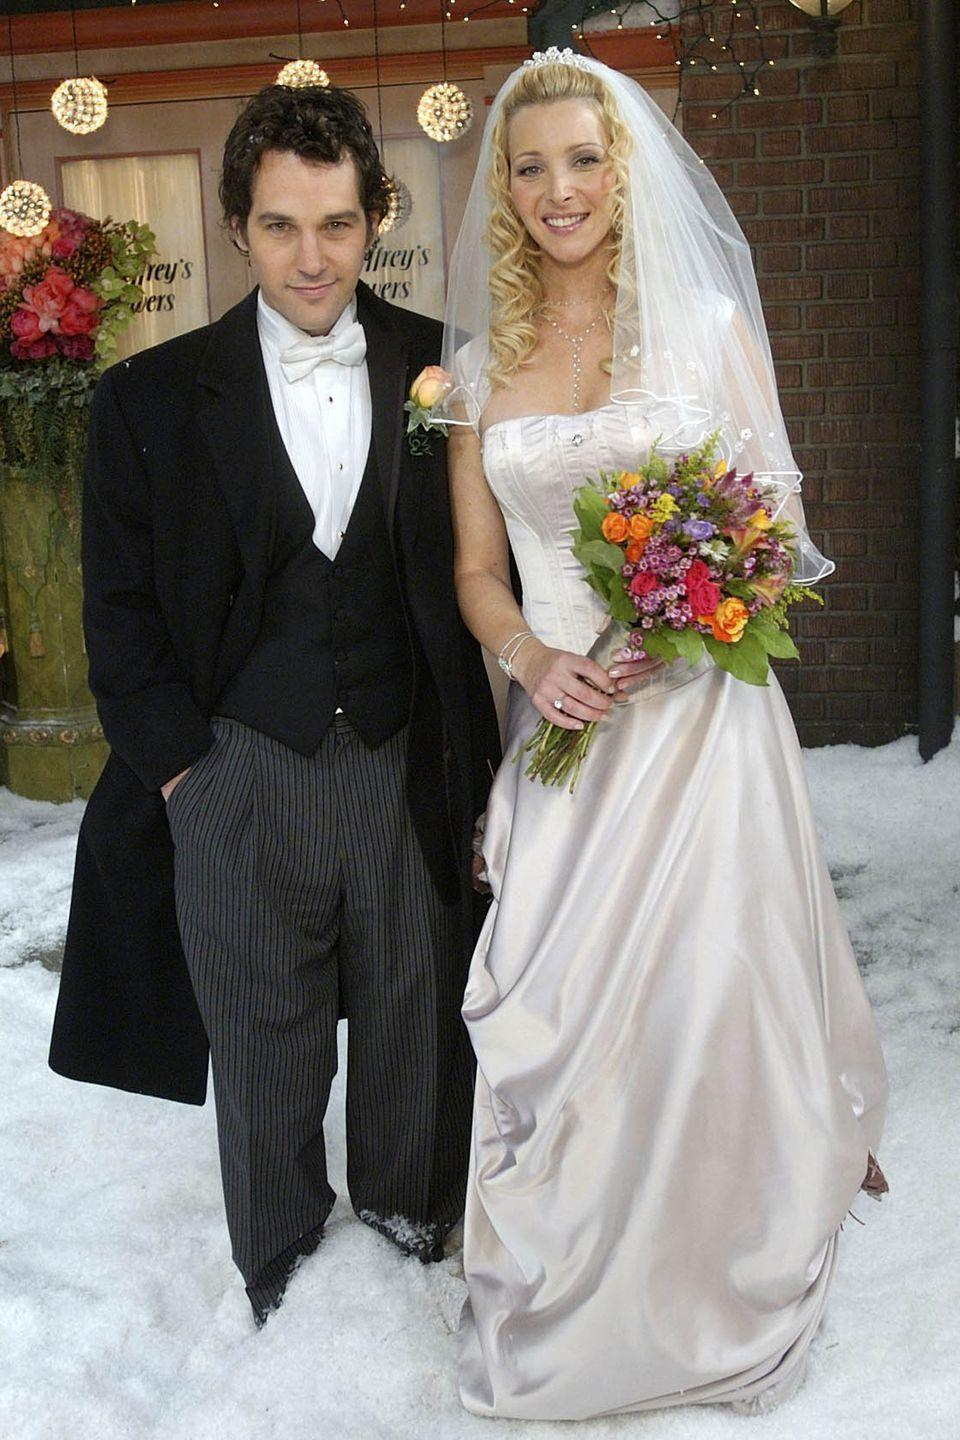 <p>Phoebe and Mike married in season 10, right outside of Central Perk, in the snow. She wore a strapless dress with a fitted bodice and draping in the skirt. </p>